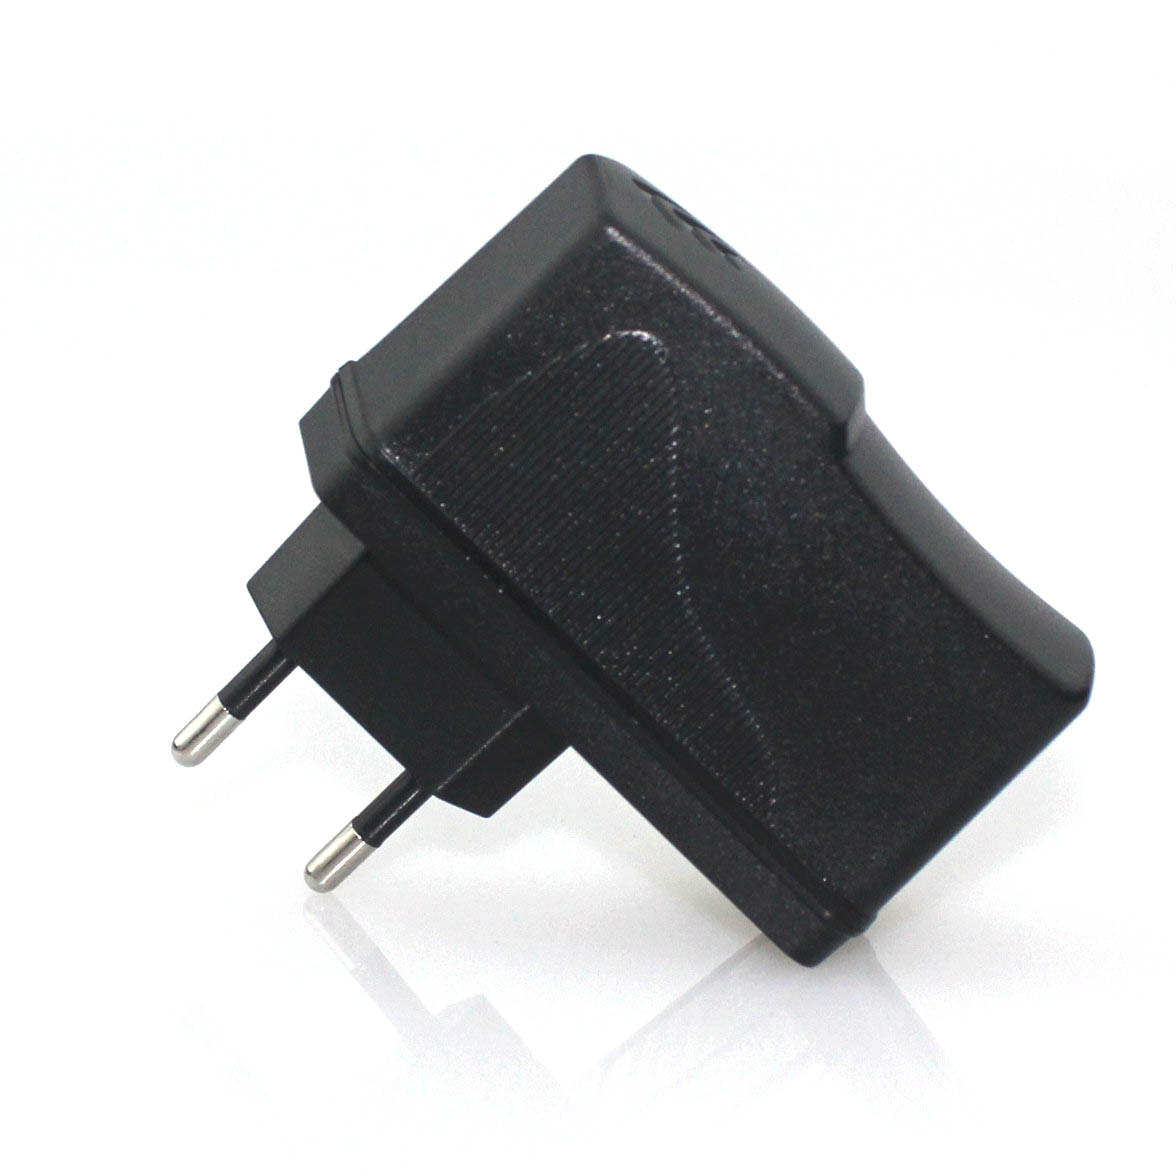 Universal 5V 2A USB DC Output Power Adapter without Cord